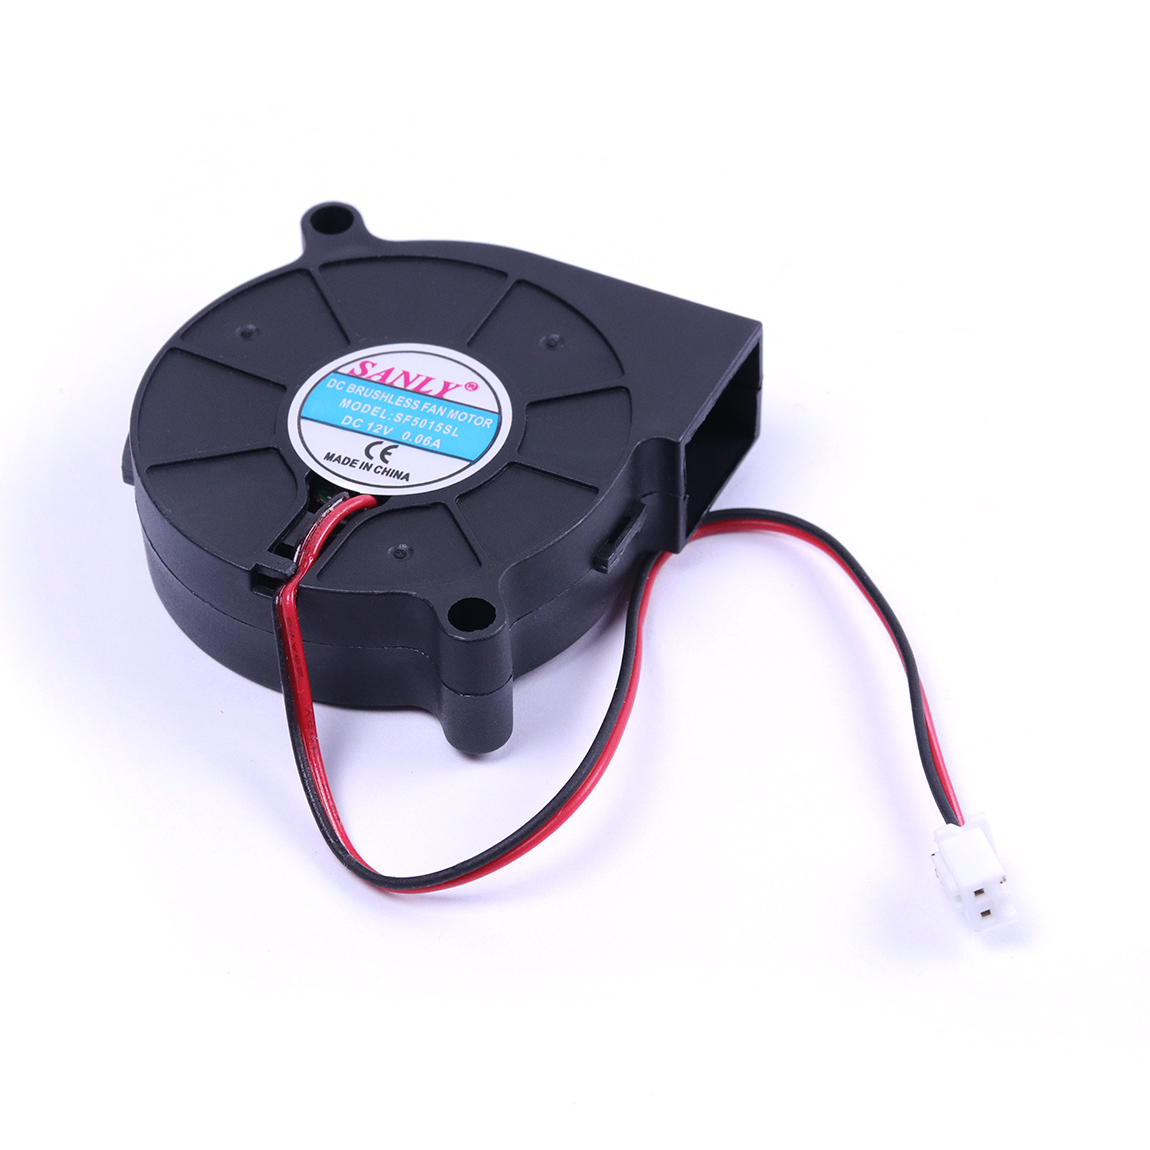 2Pcs/lot SF5015SL DC 12V 0.06A Cooling Turbine Blower Fan 50x50x15mm Snail Fan Quiet Blower Fan For Heater